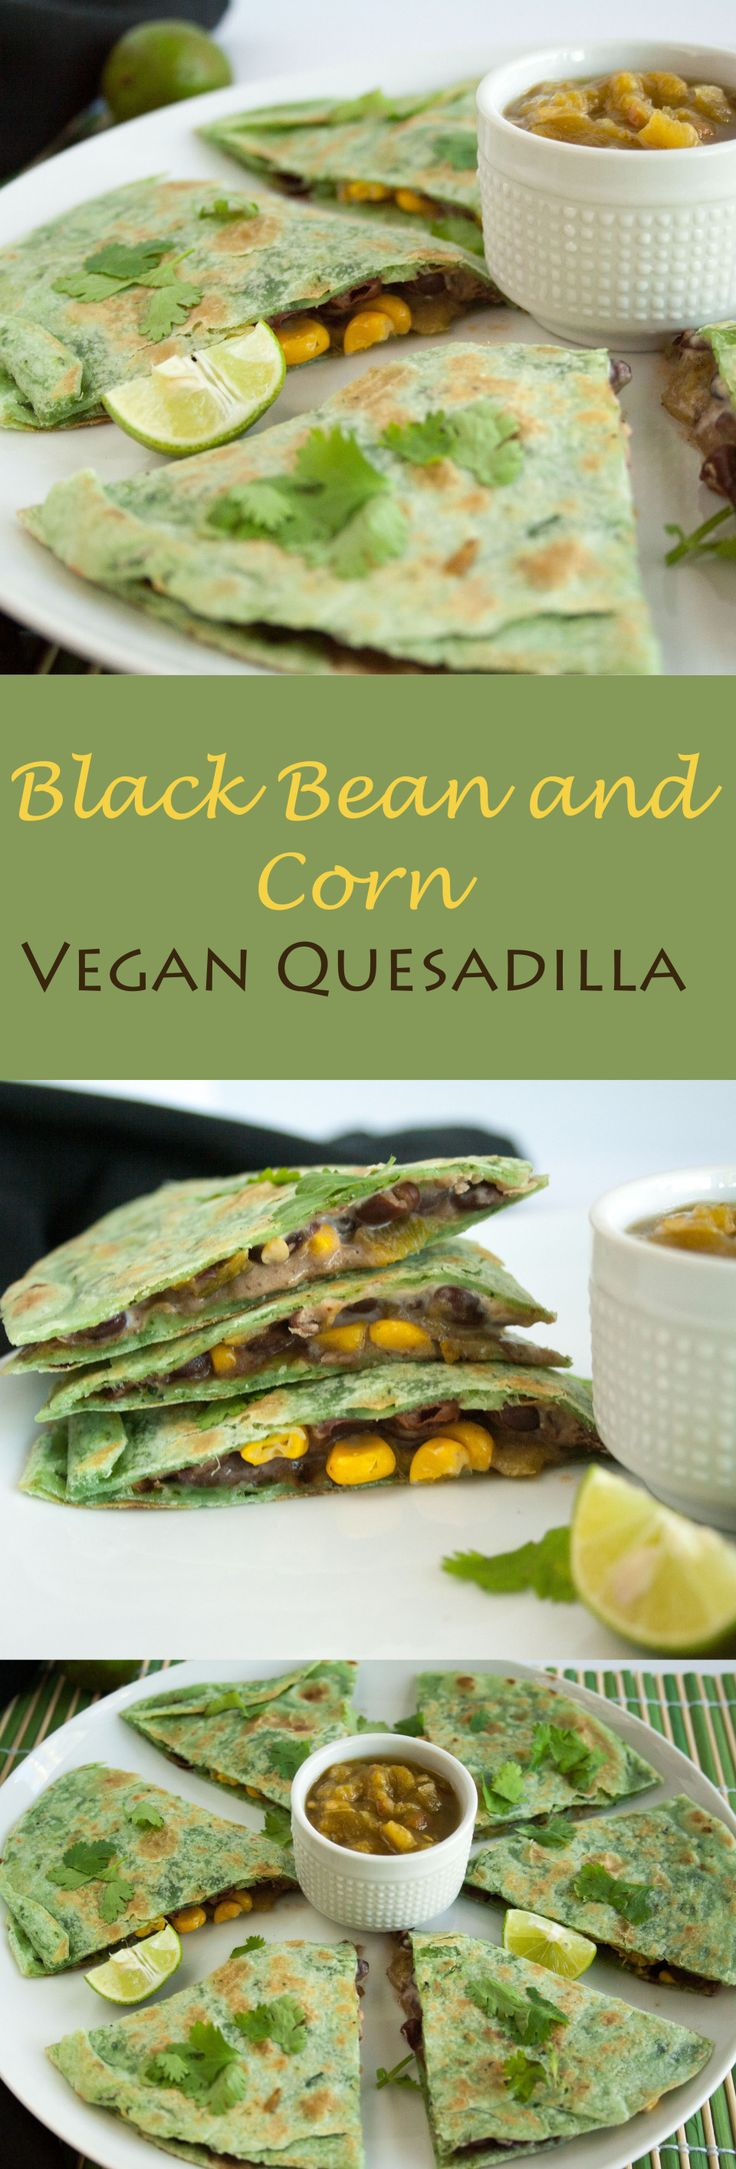 Black Bean and Corn Vegan Quesadilla - These rich vegan, gluten free quesadillas can be made in no time.